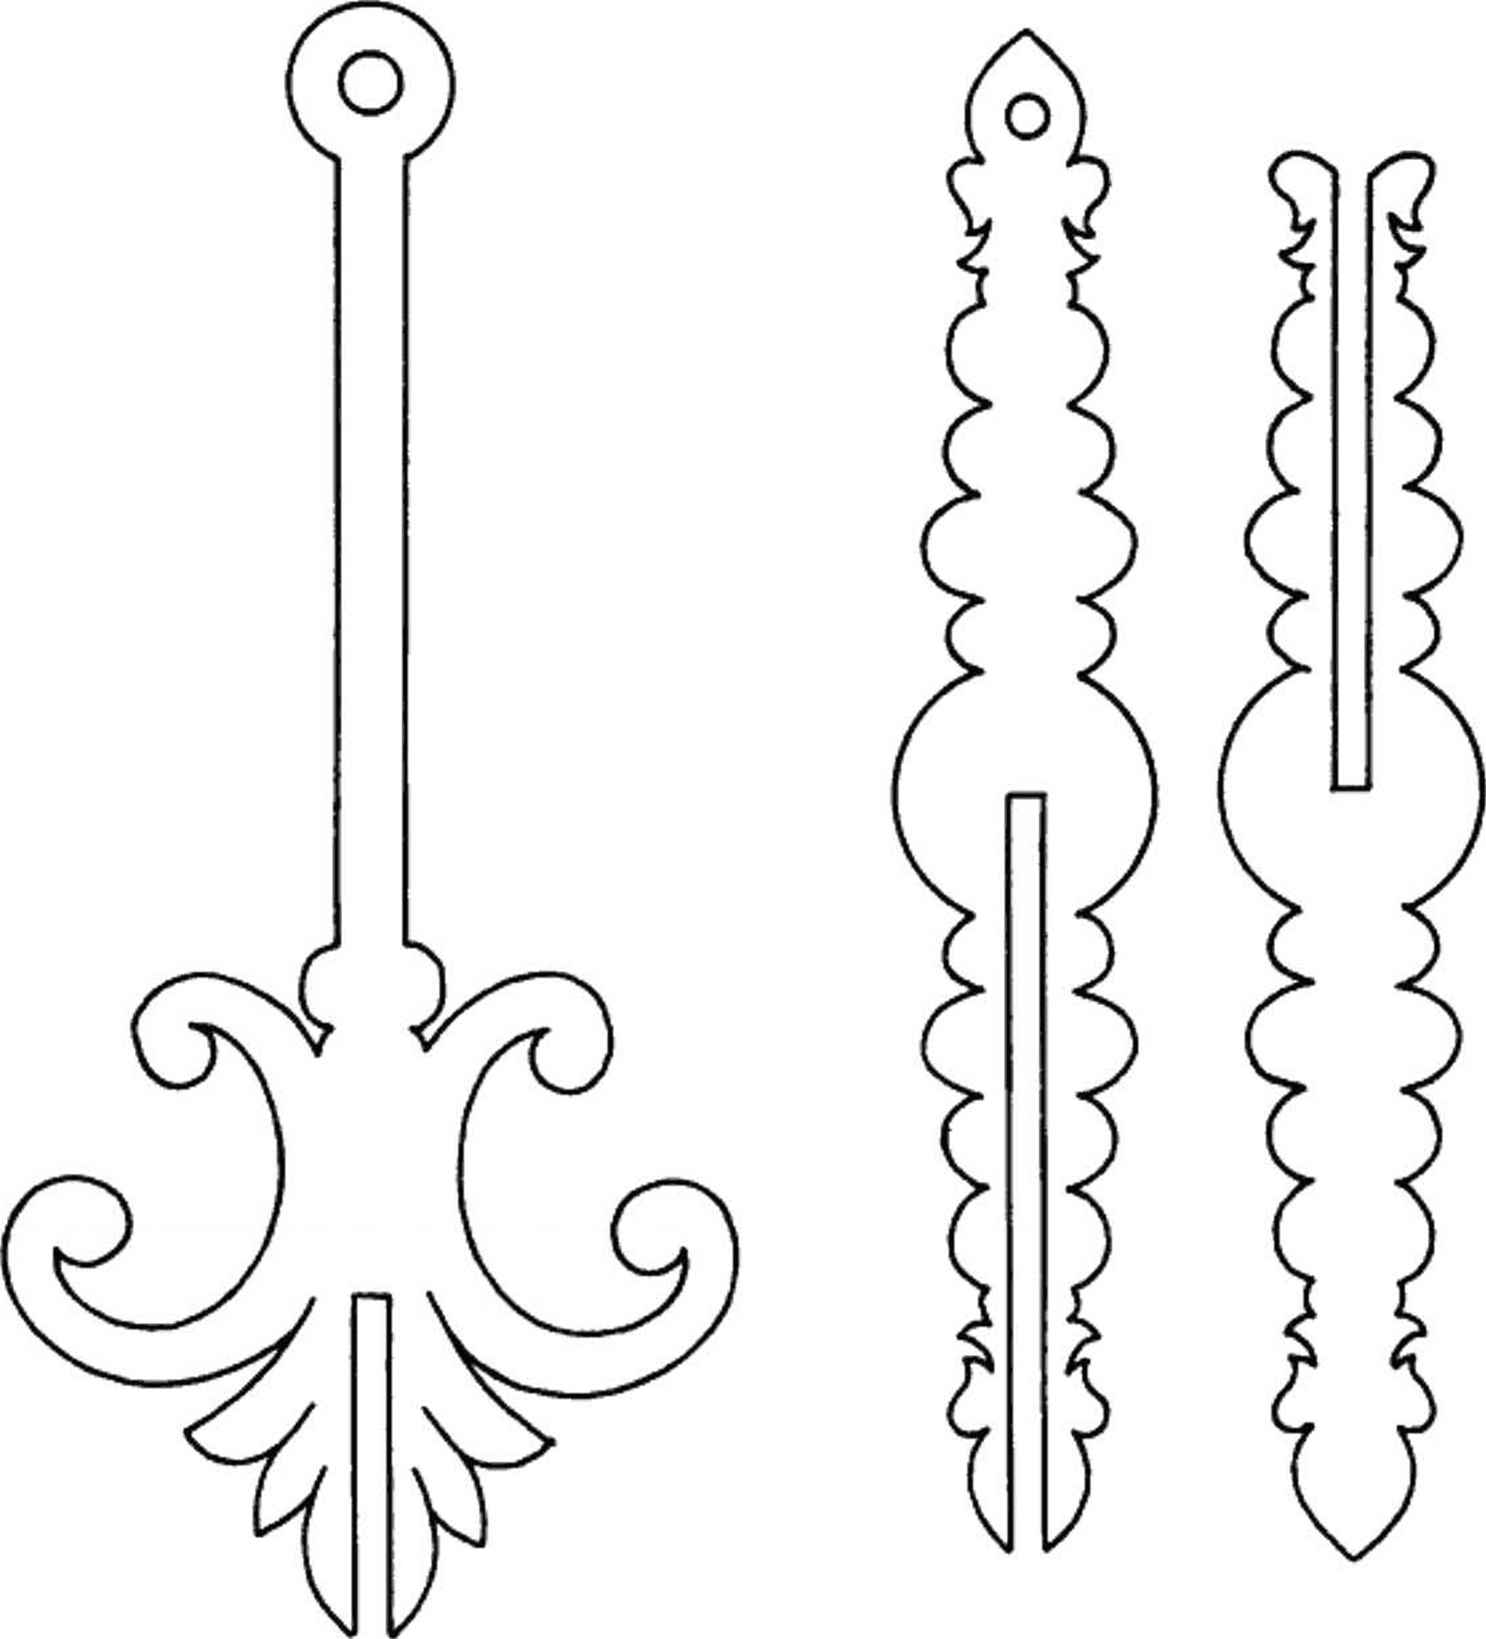 Hanging Ornaments - Scroll saw - Woodworking Archive